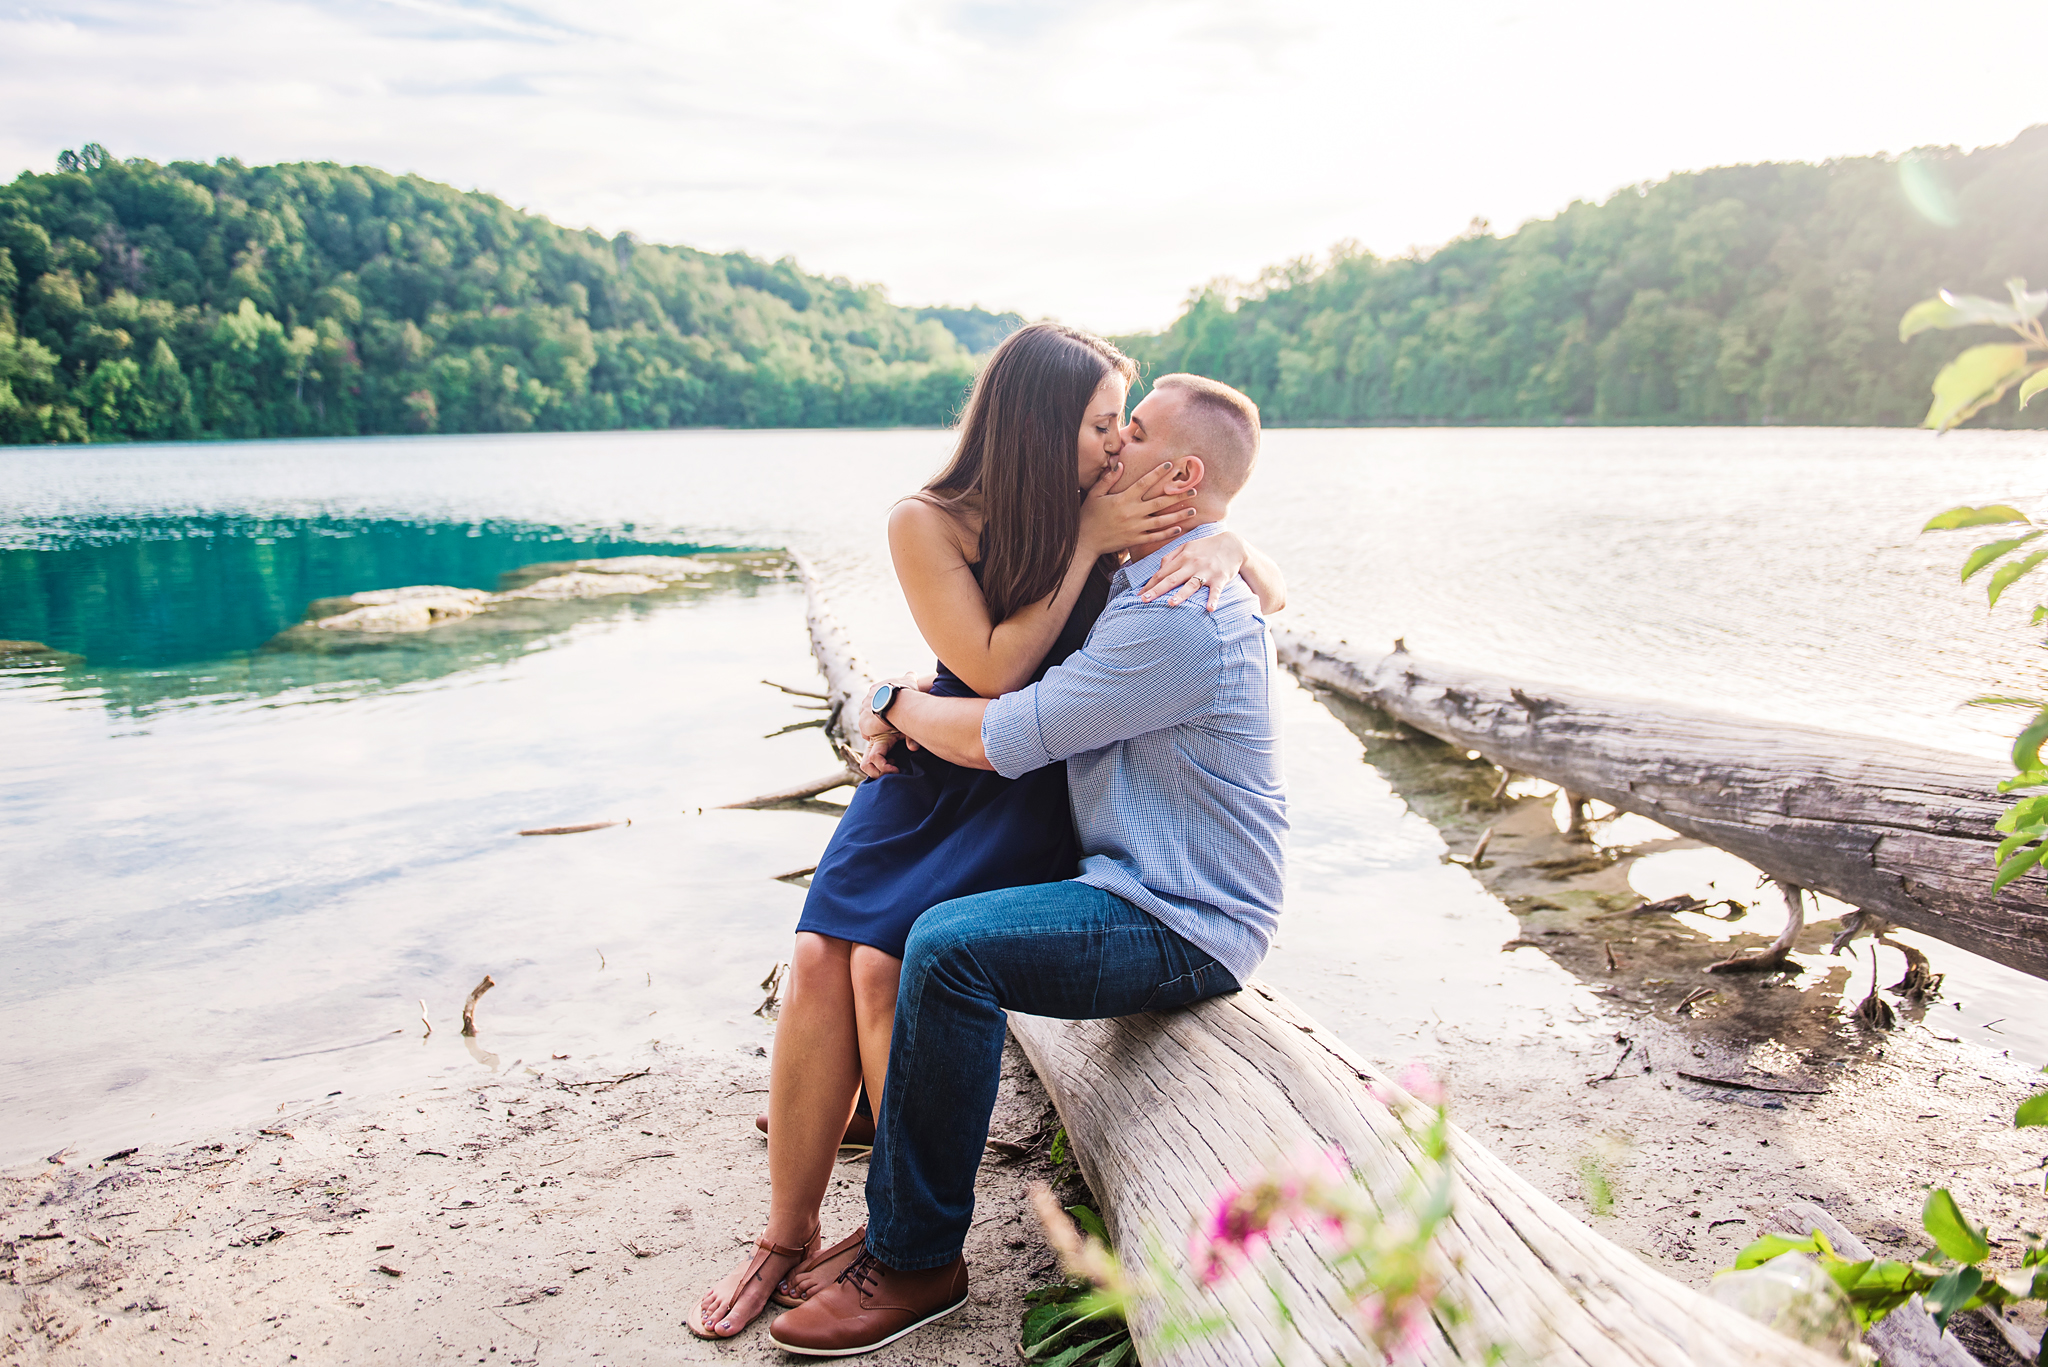 Green_Lakes_State_Park_Syracuse_Engagement_Session_JILL_STUDIO_Rochester_NY_Photographer_DSC_1010.jpg